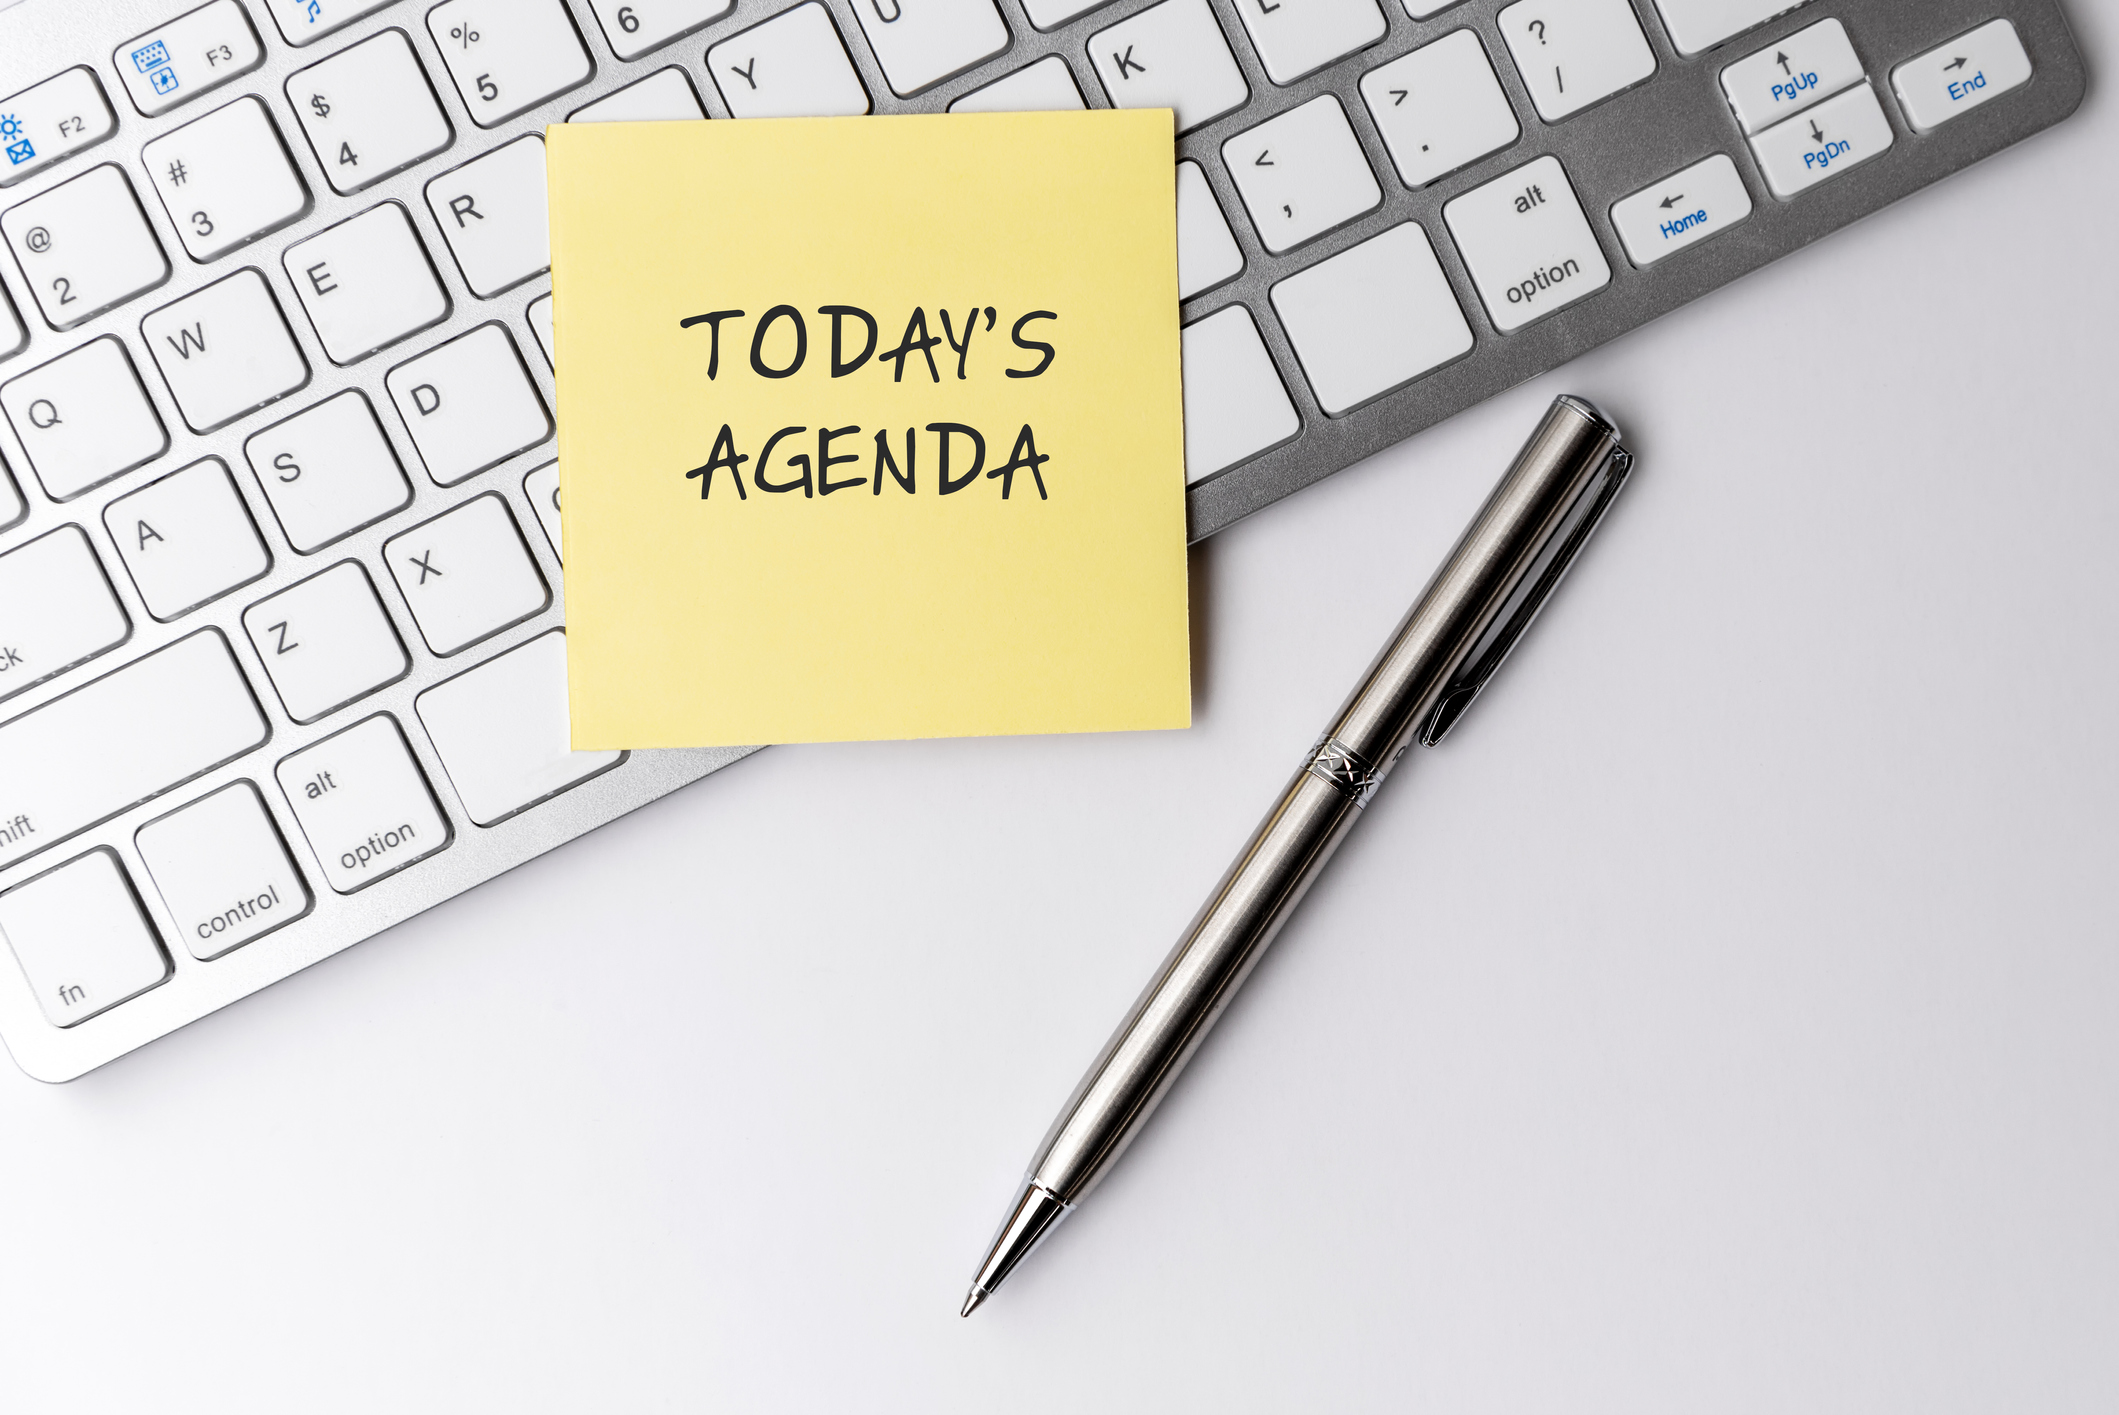 Make a schedule to work productively